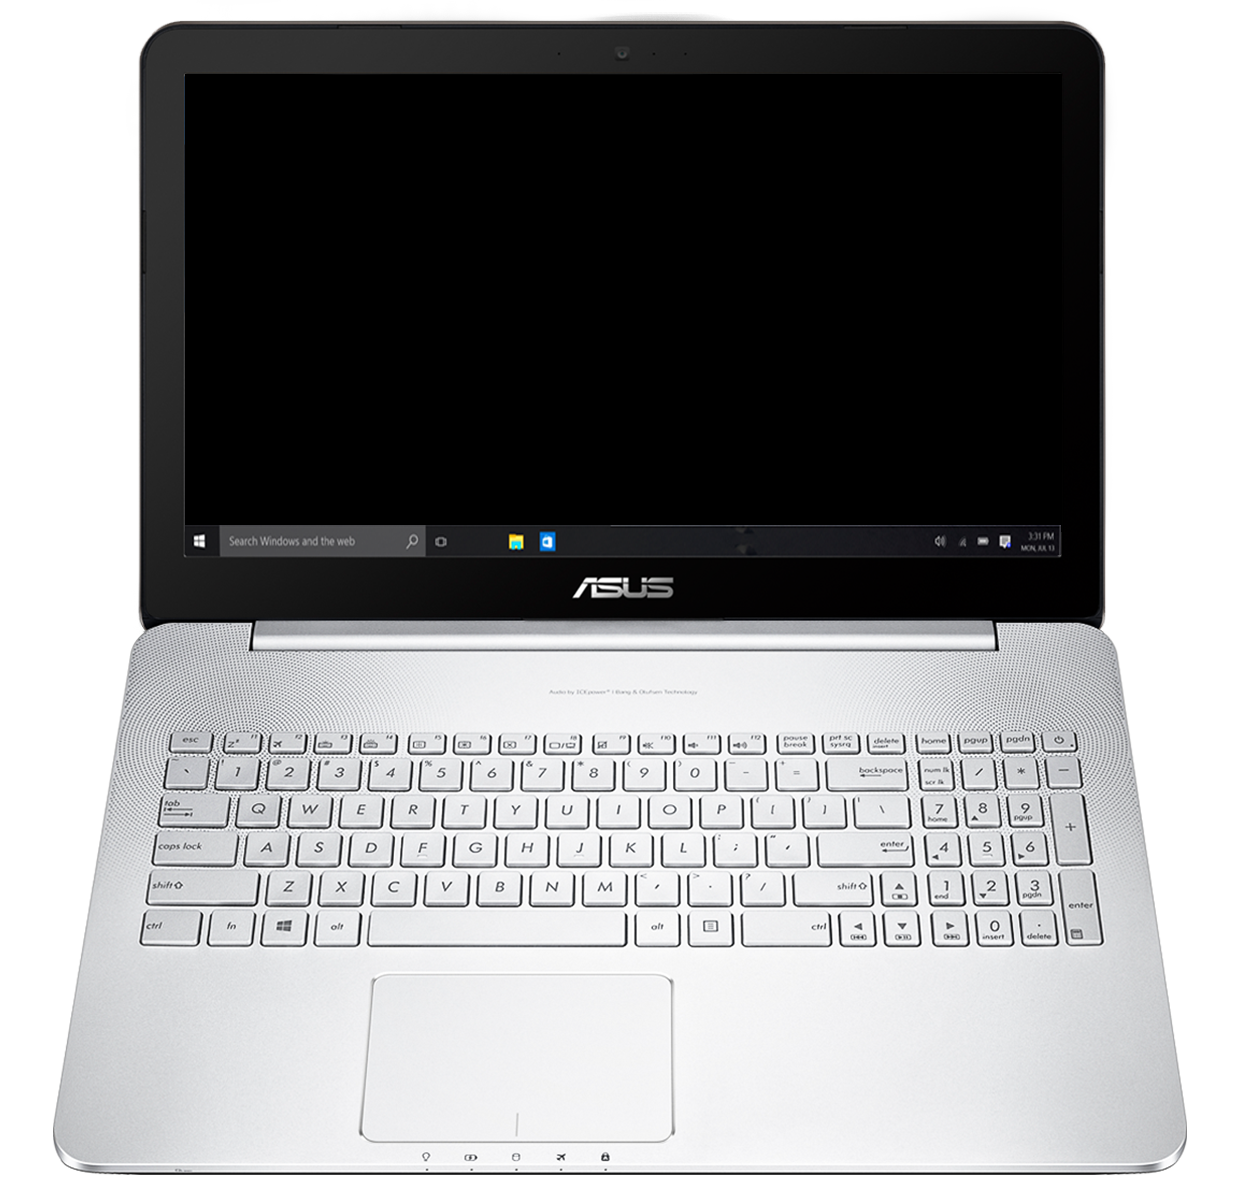 ASUS VivoBook Pro N552VX Smart Gesture Windows 7 64-BIT